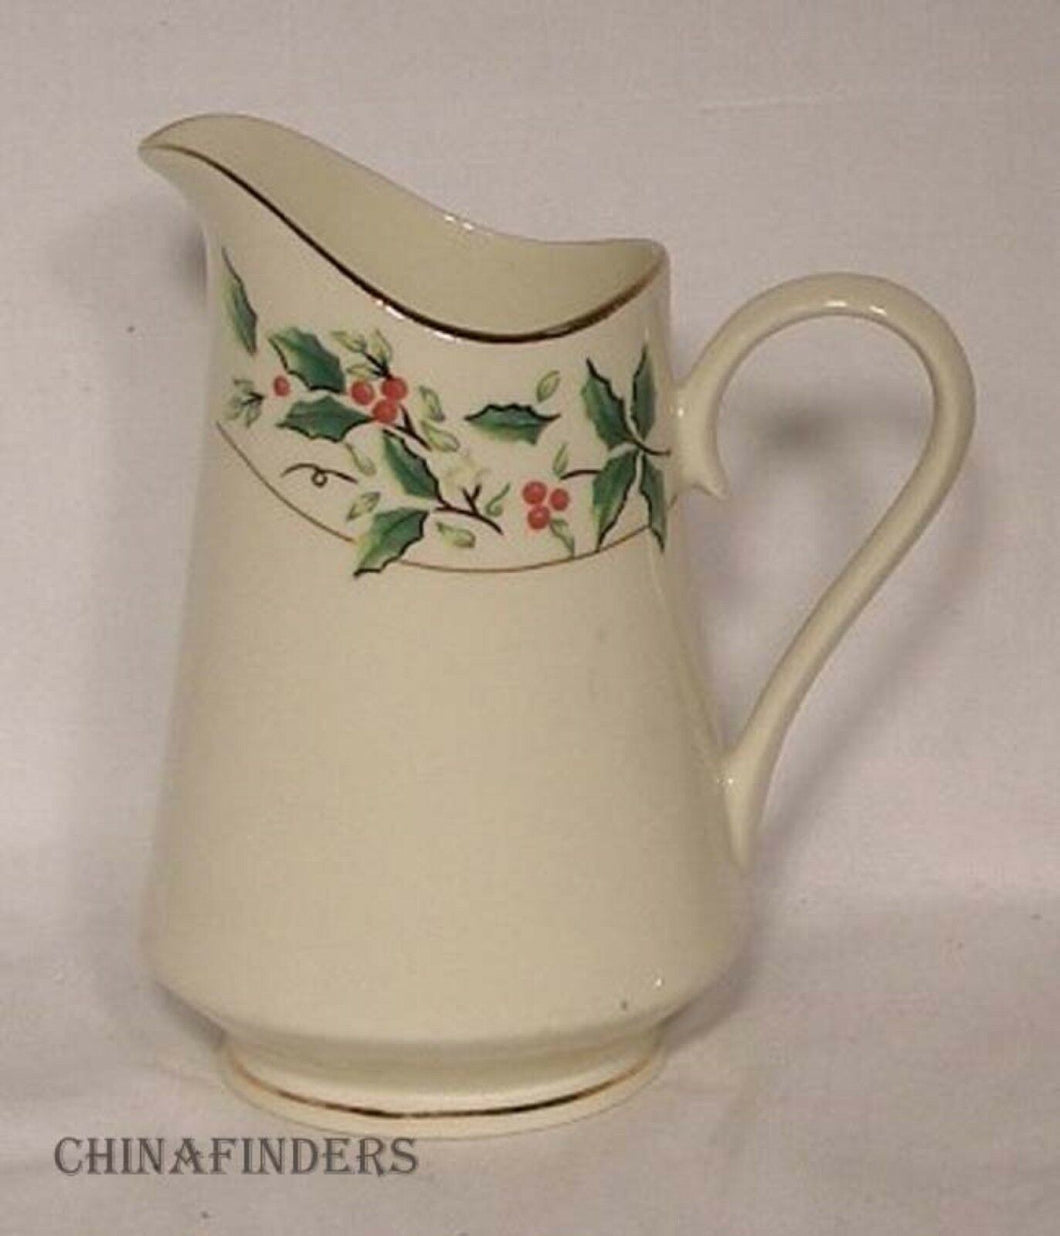 MADE in CHINA china HOLLY TRADITIONS pattern CREAMER cream pitcher jug